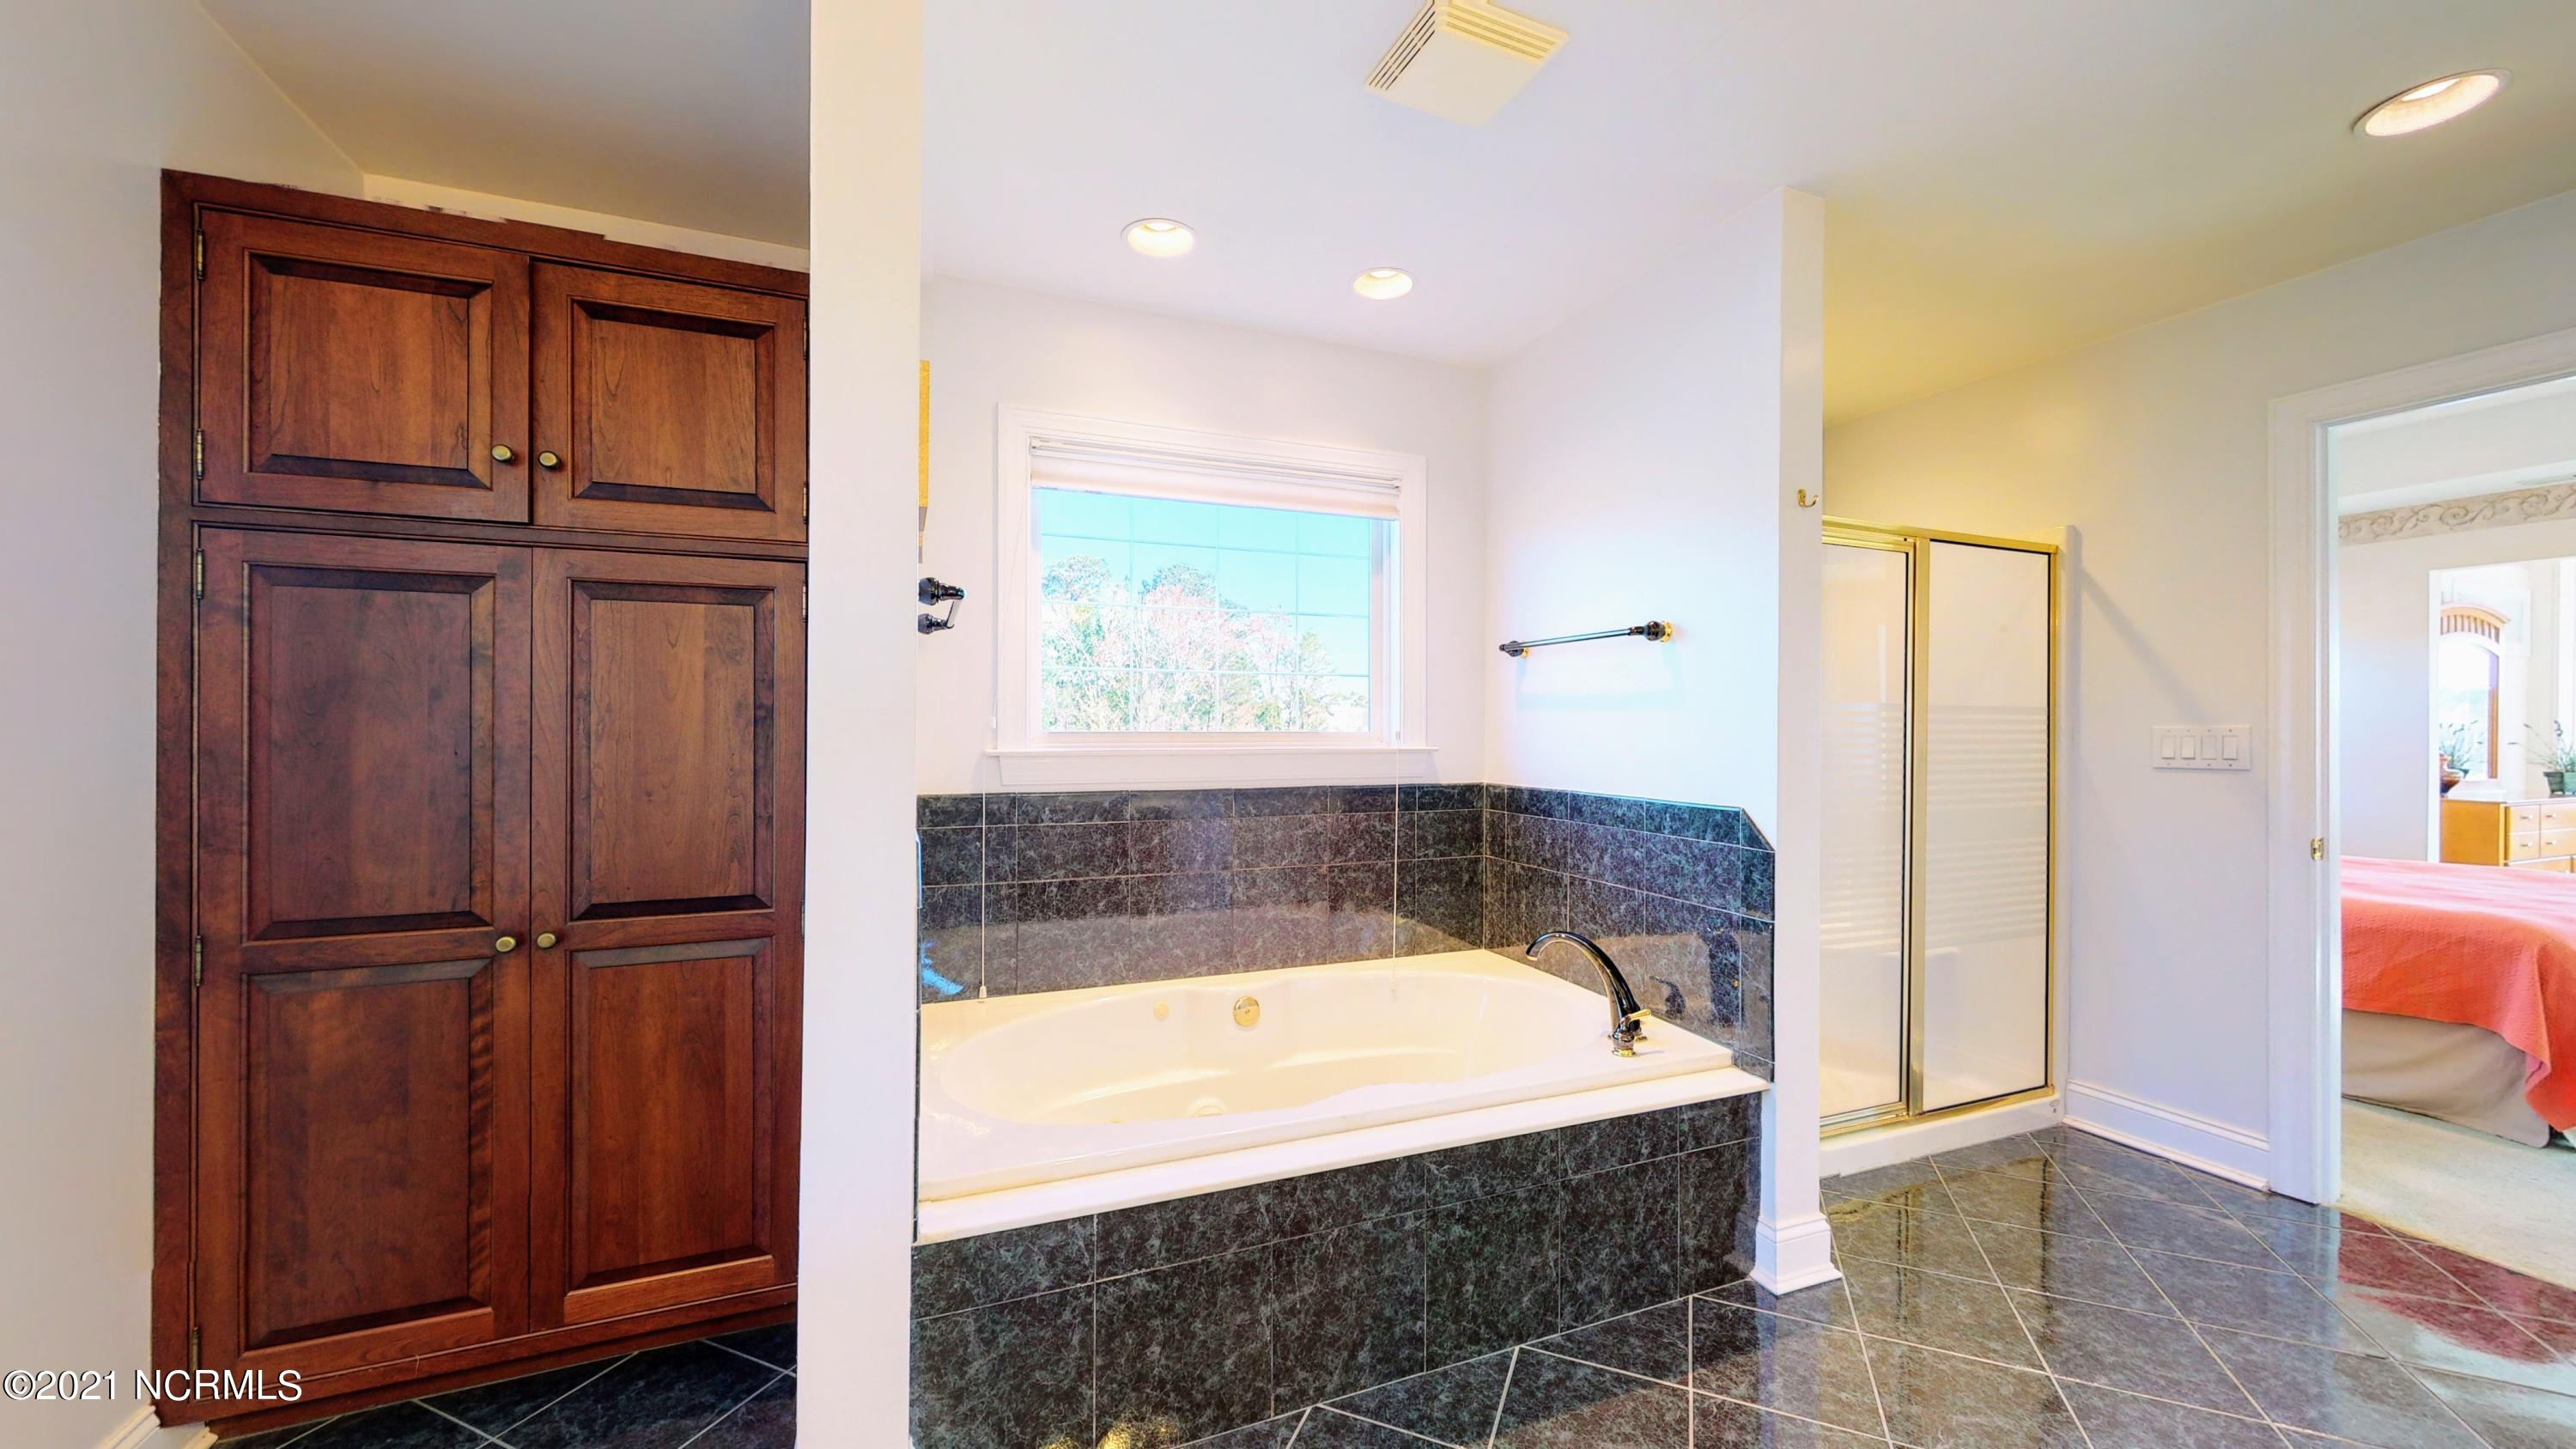 4457 Midshipman Court, Southport, North Carolina 28461, 4 Bedrooms Bedrooms, 9 Rooms Rooms,3 BathroomsBathrooms,Single family residence,For sale,Midshipman,100262276